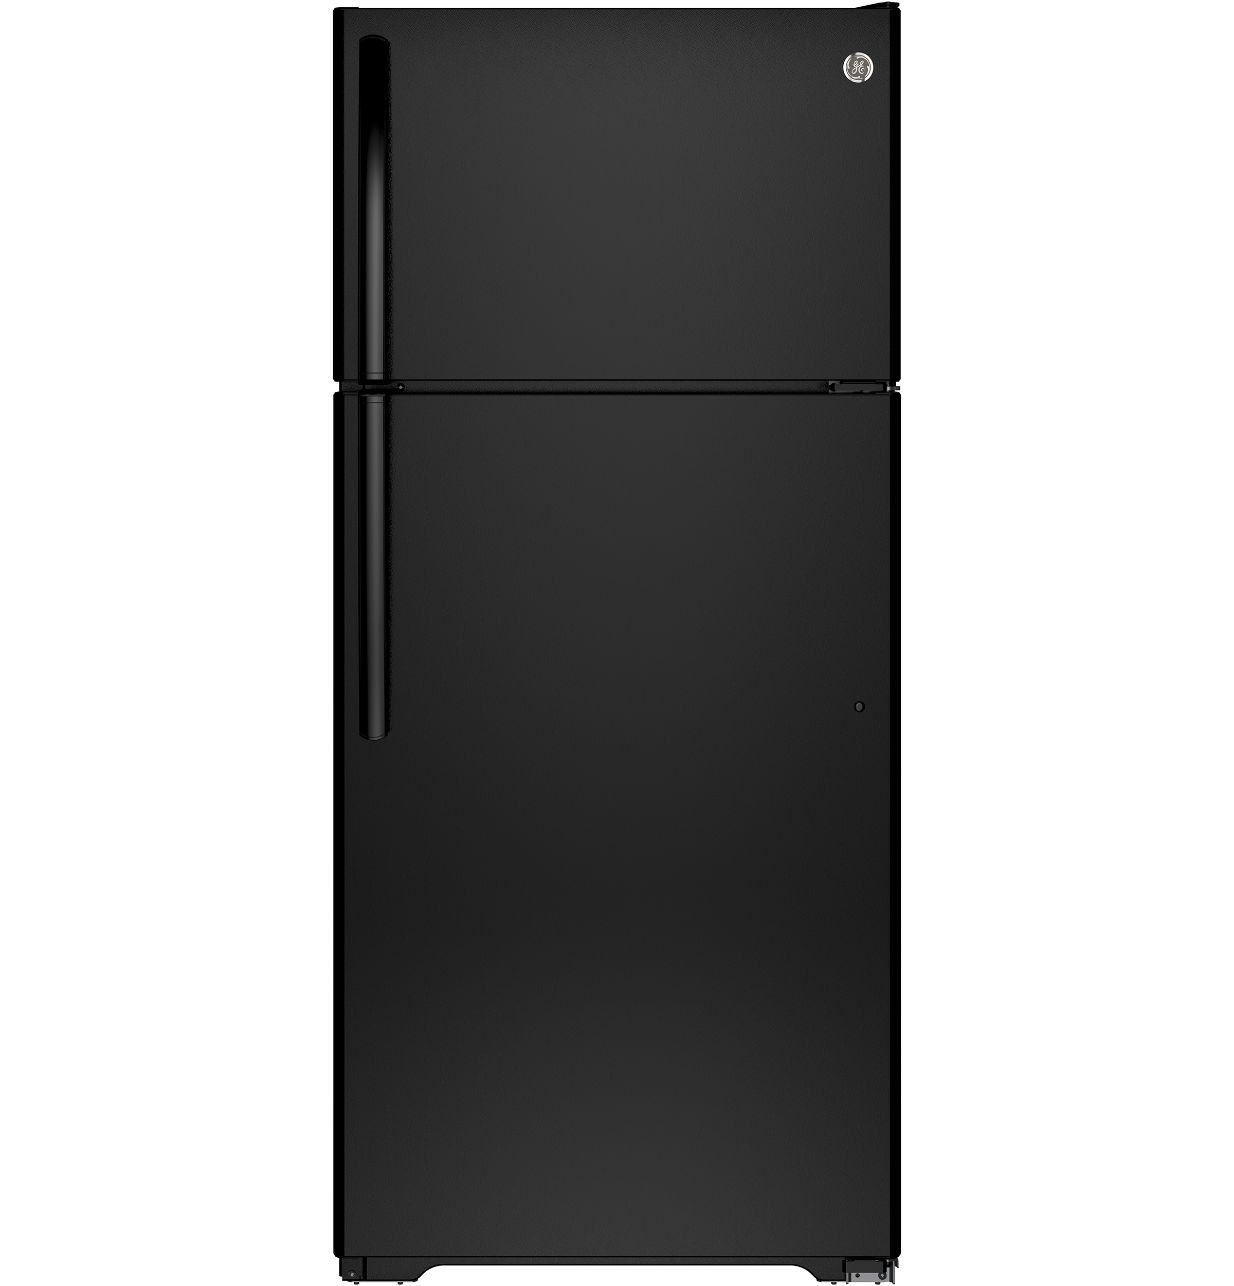 GE ENERGY STAR 14.6 Cu. Ft. Top-Freezer Refrigerator